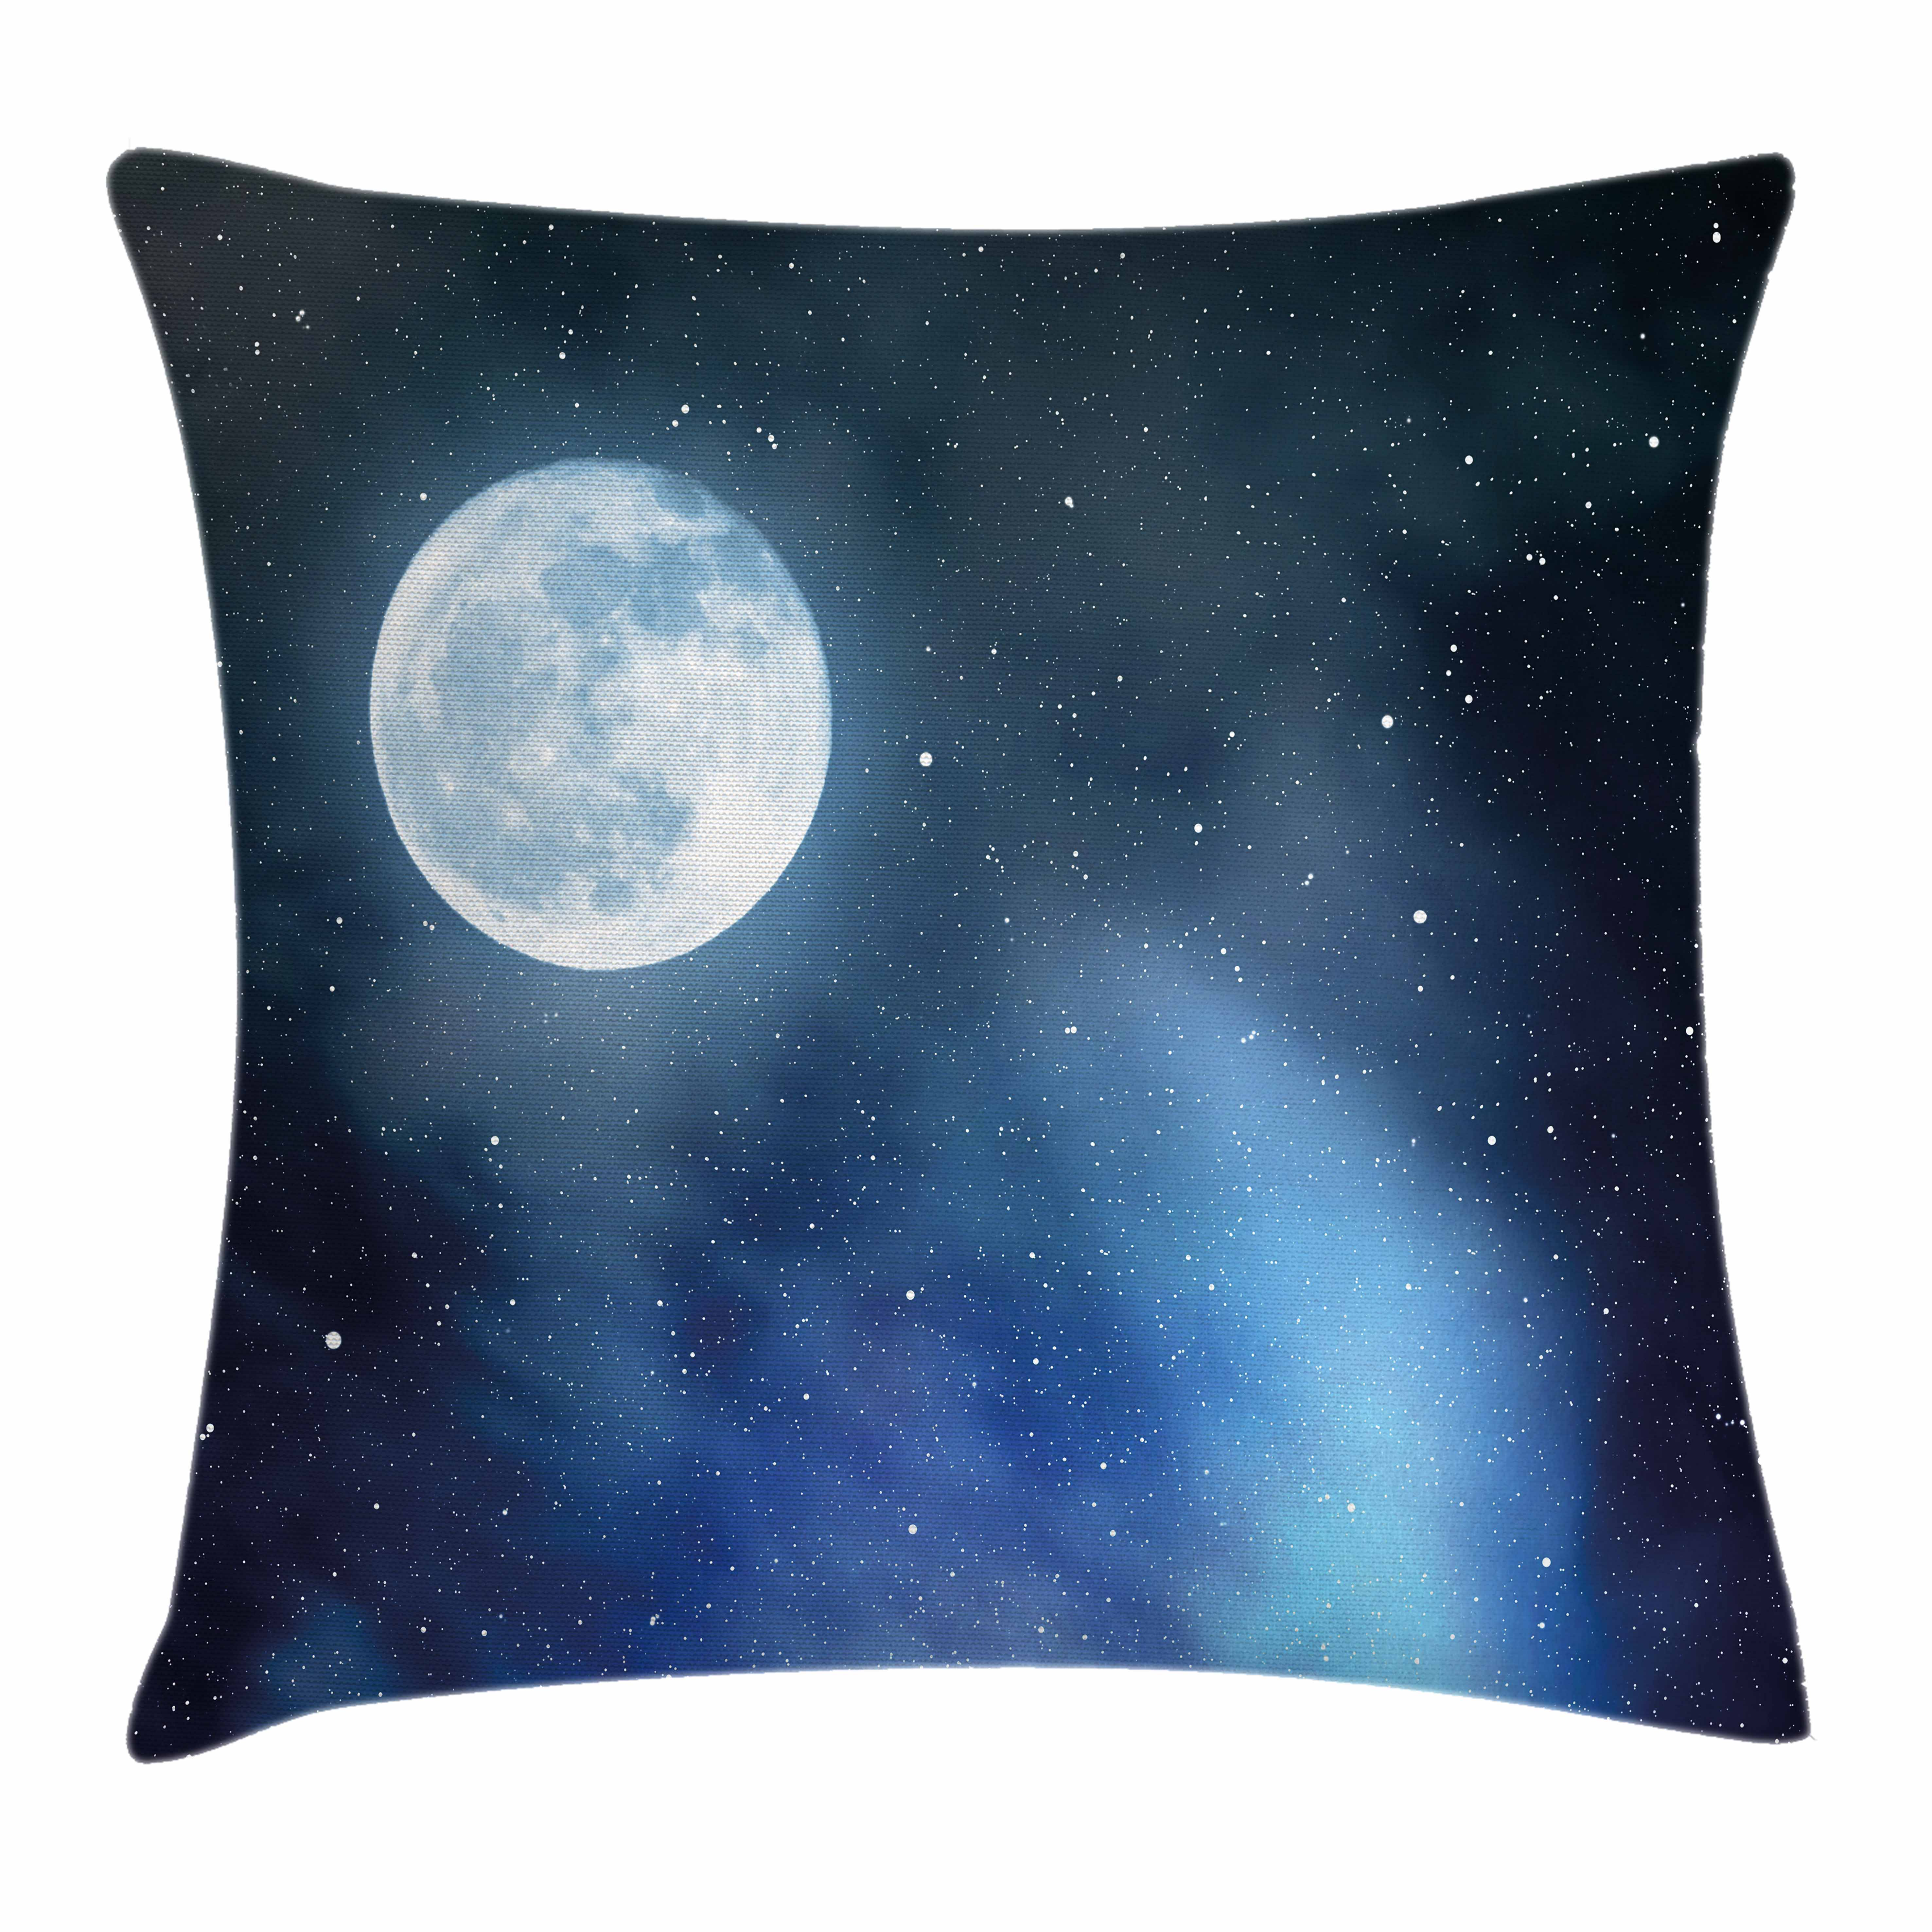 Moon Throw Pillow Cushion Cover Night Sky With Stars Full